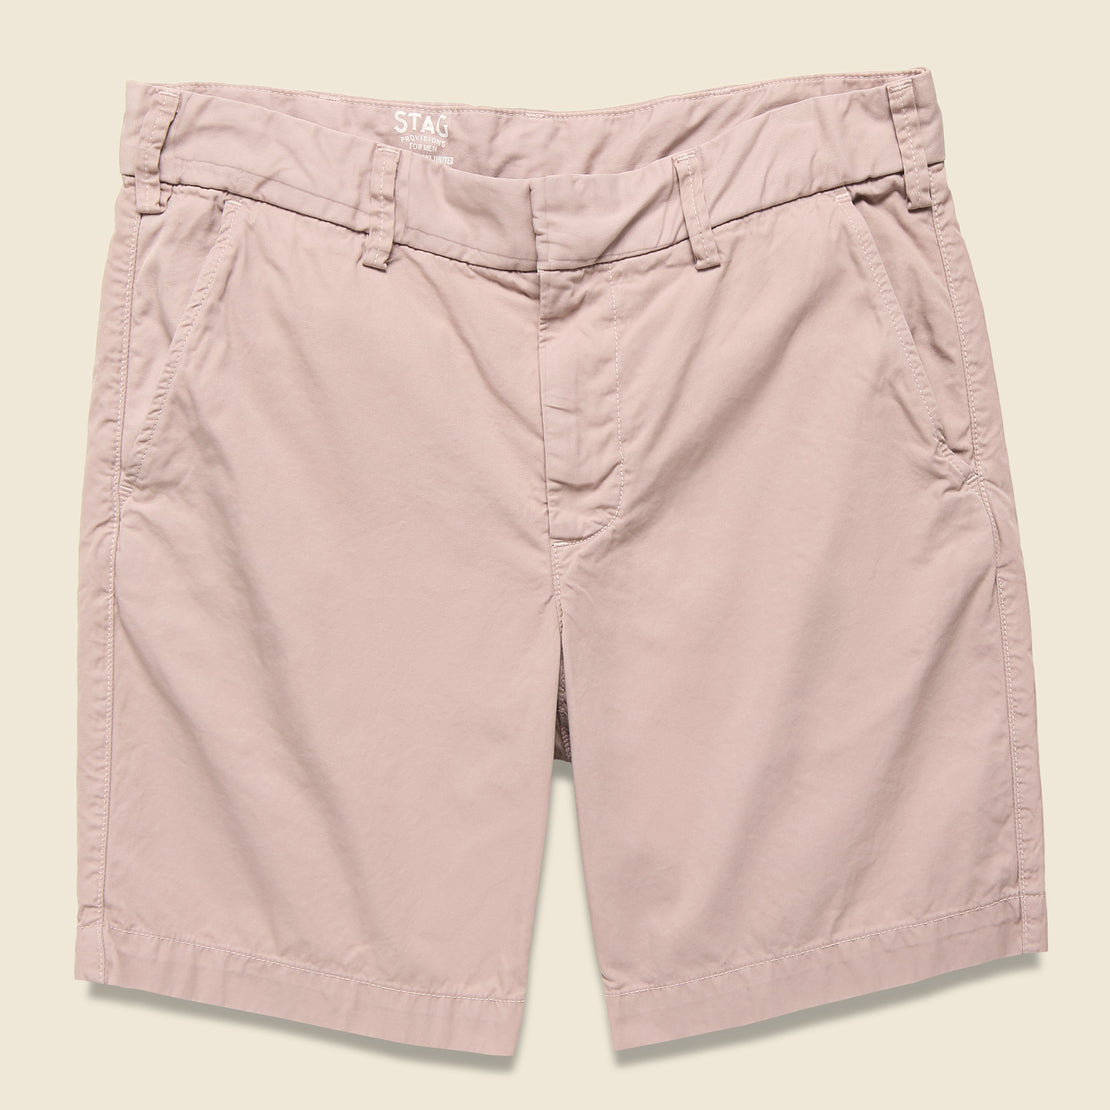 Save Khaki Twill Bermuda Short - Dusk